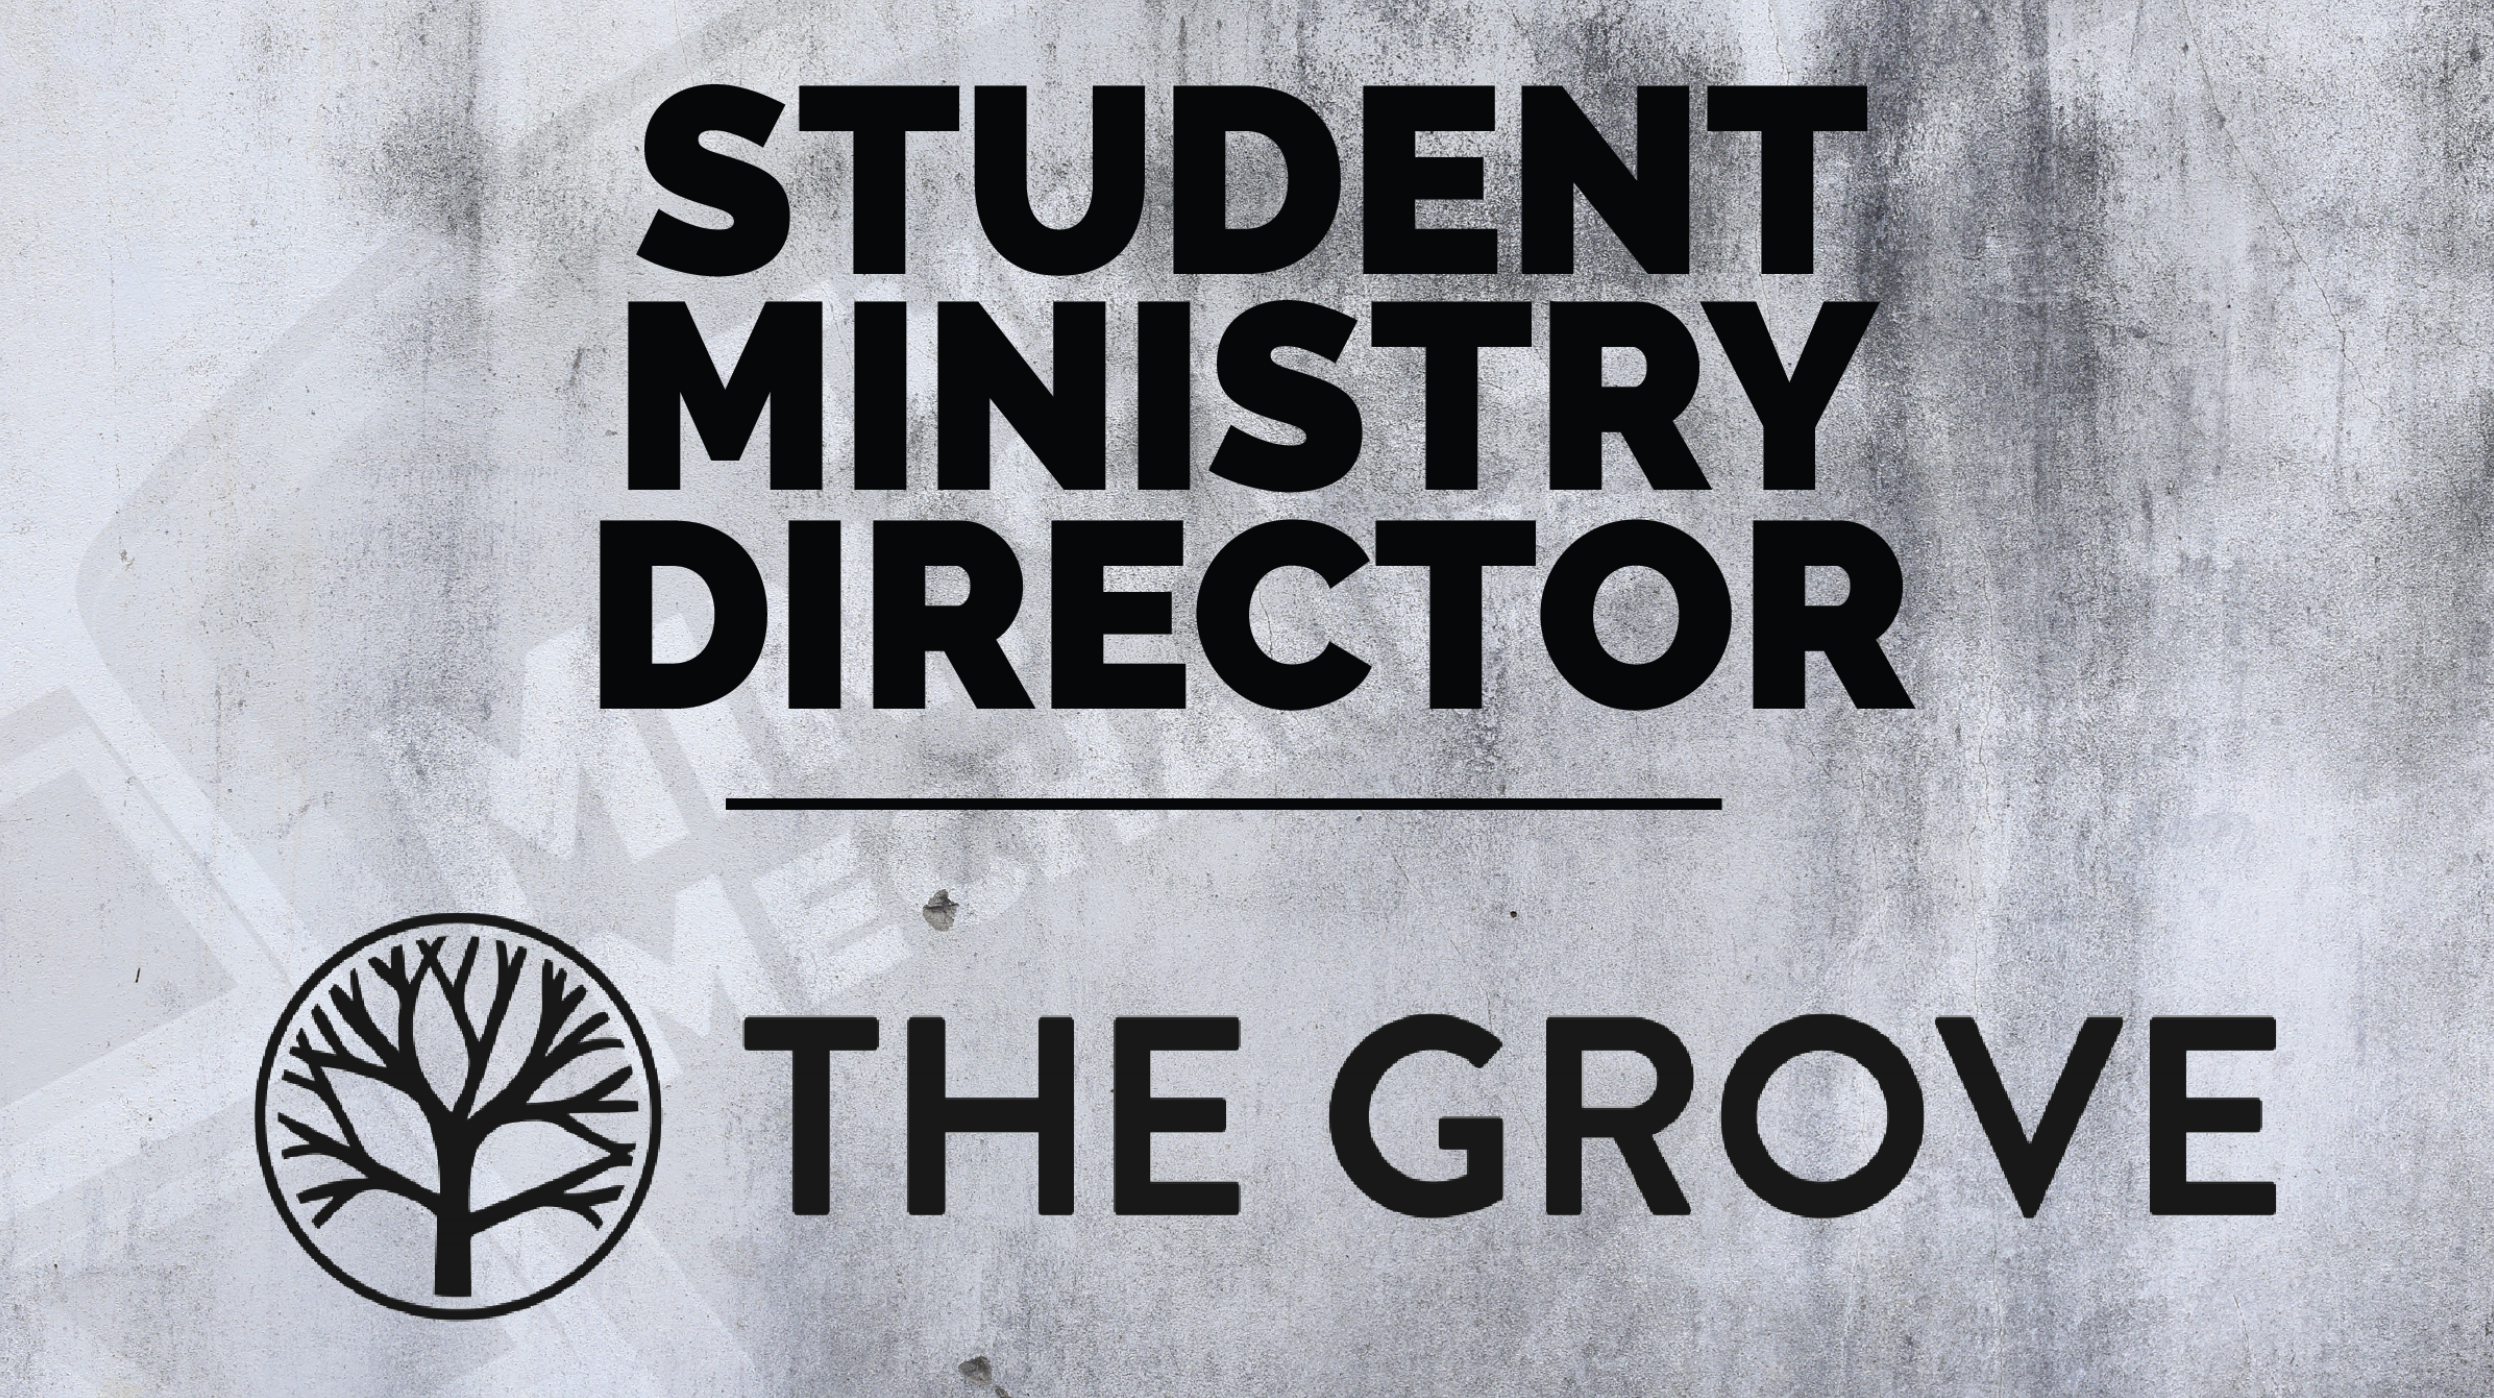 The Grove Student Ministry Director 16x9.png